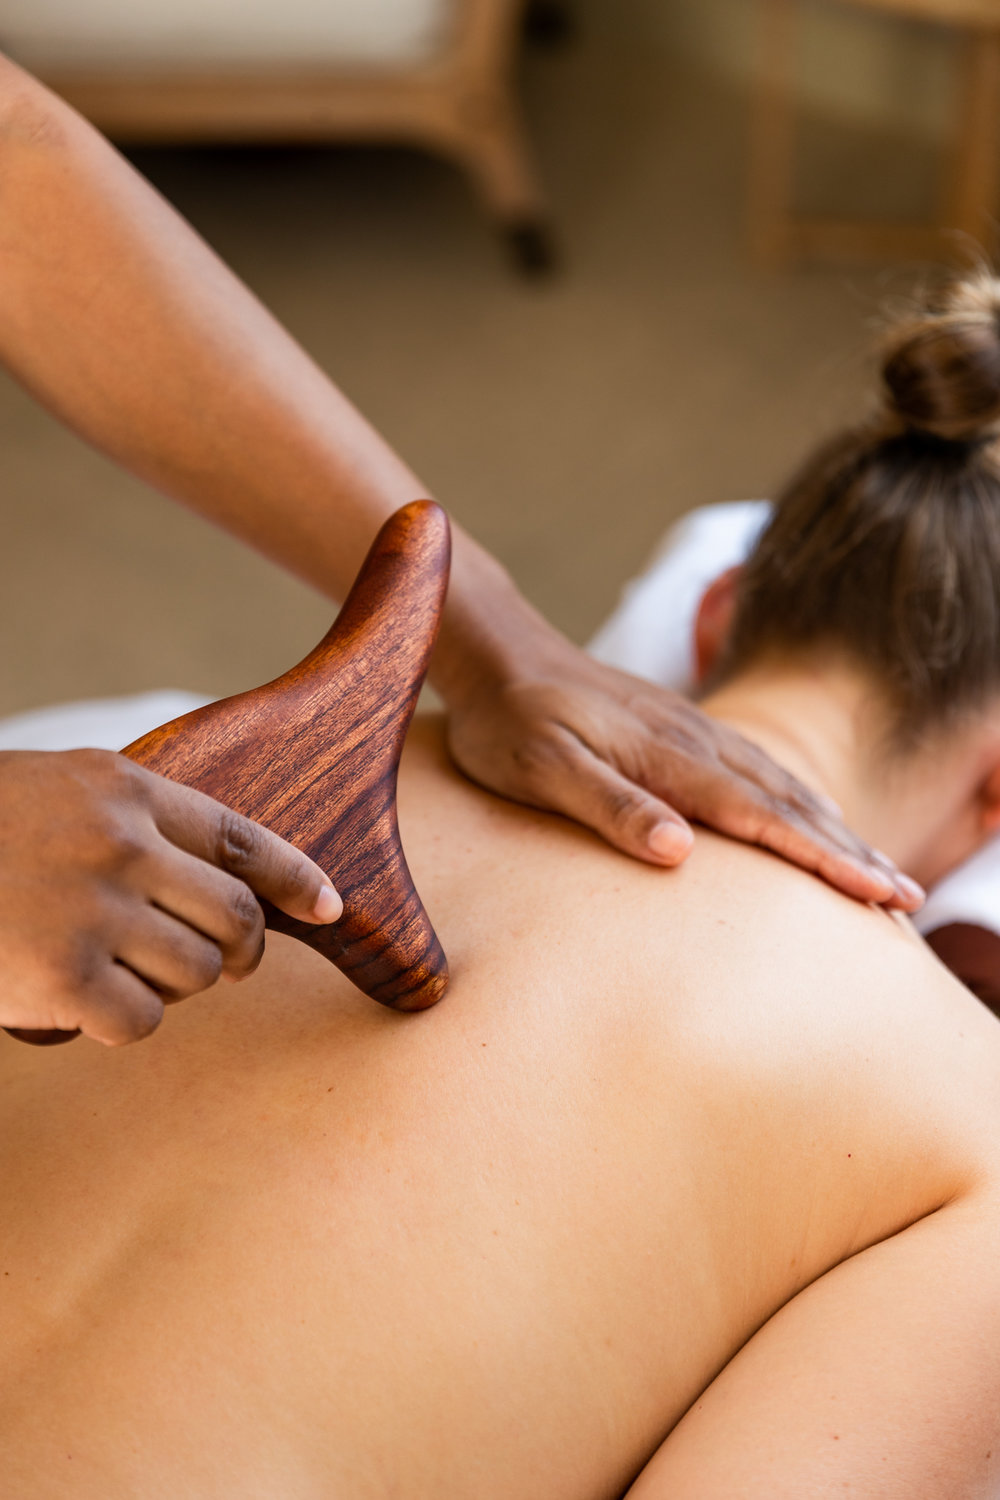 Female having a massage using wooden massage sticks at Delaire Graff Spa